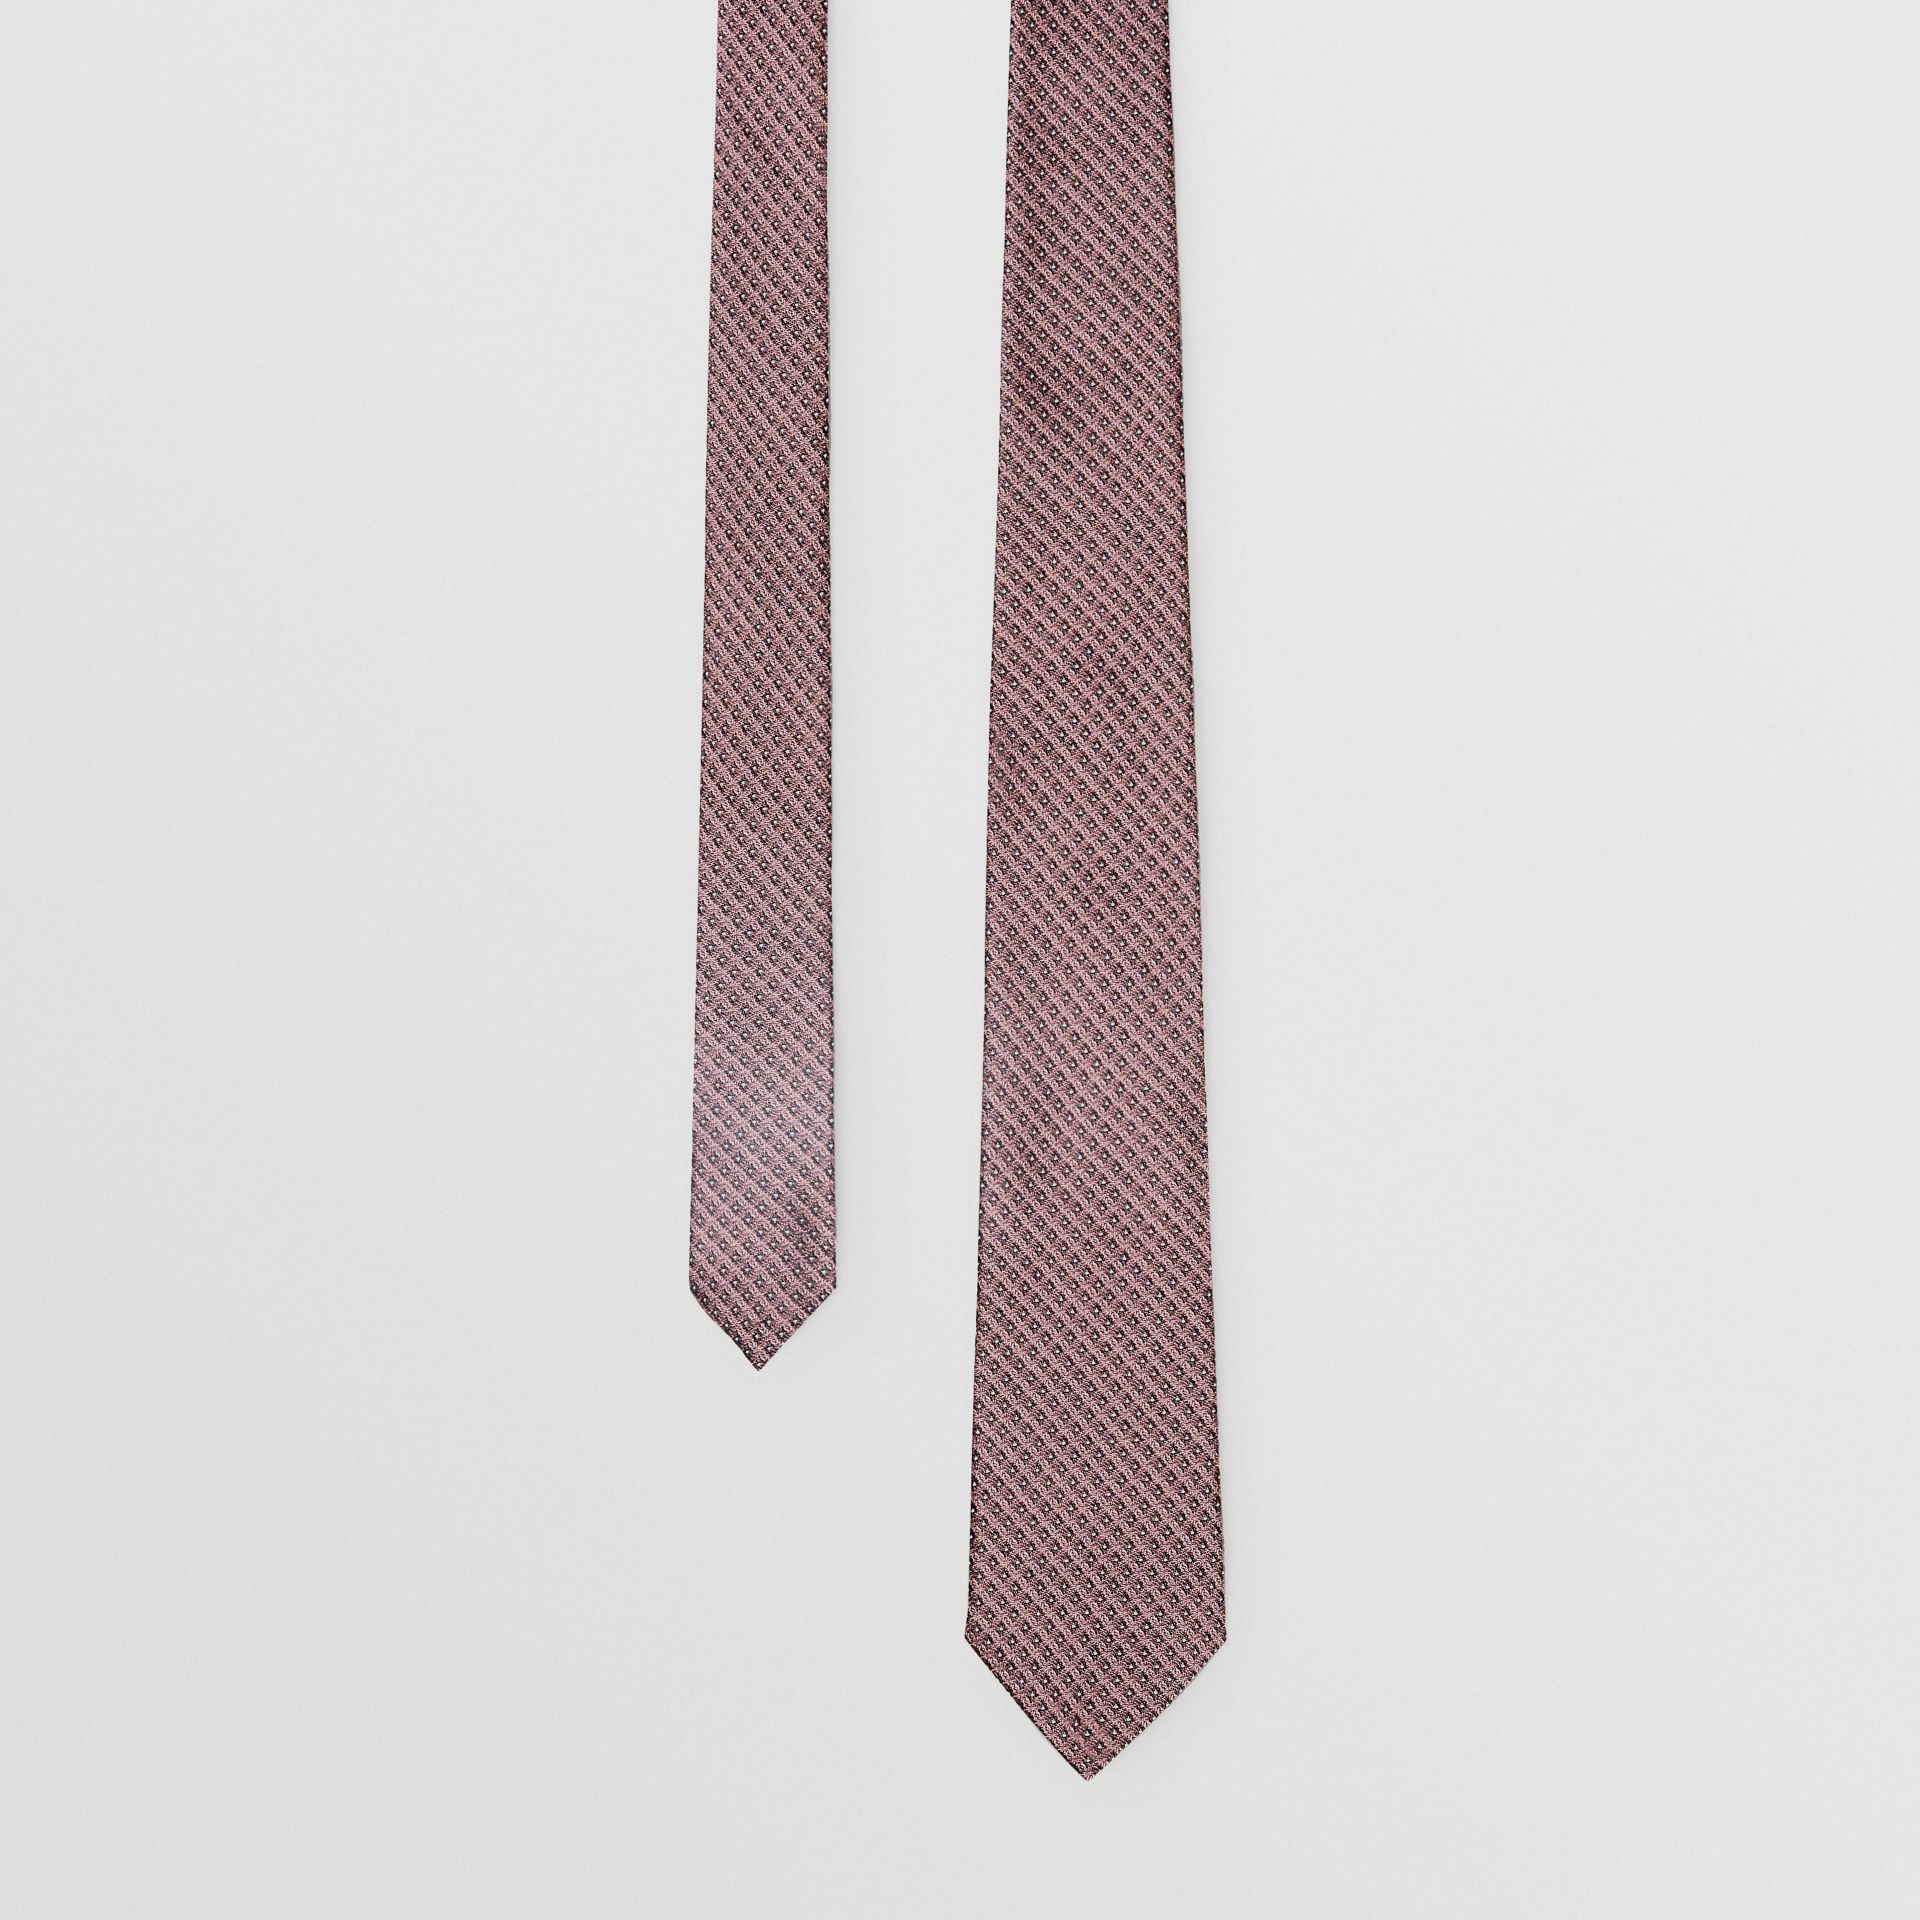 Classic Cut Micro Dot Silk Jacquard Tie in Garnet Pink - Men | Burberry United Kingdom - gallery image 0